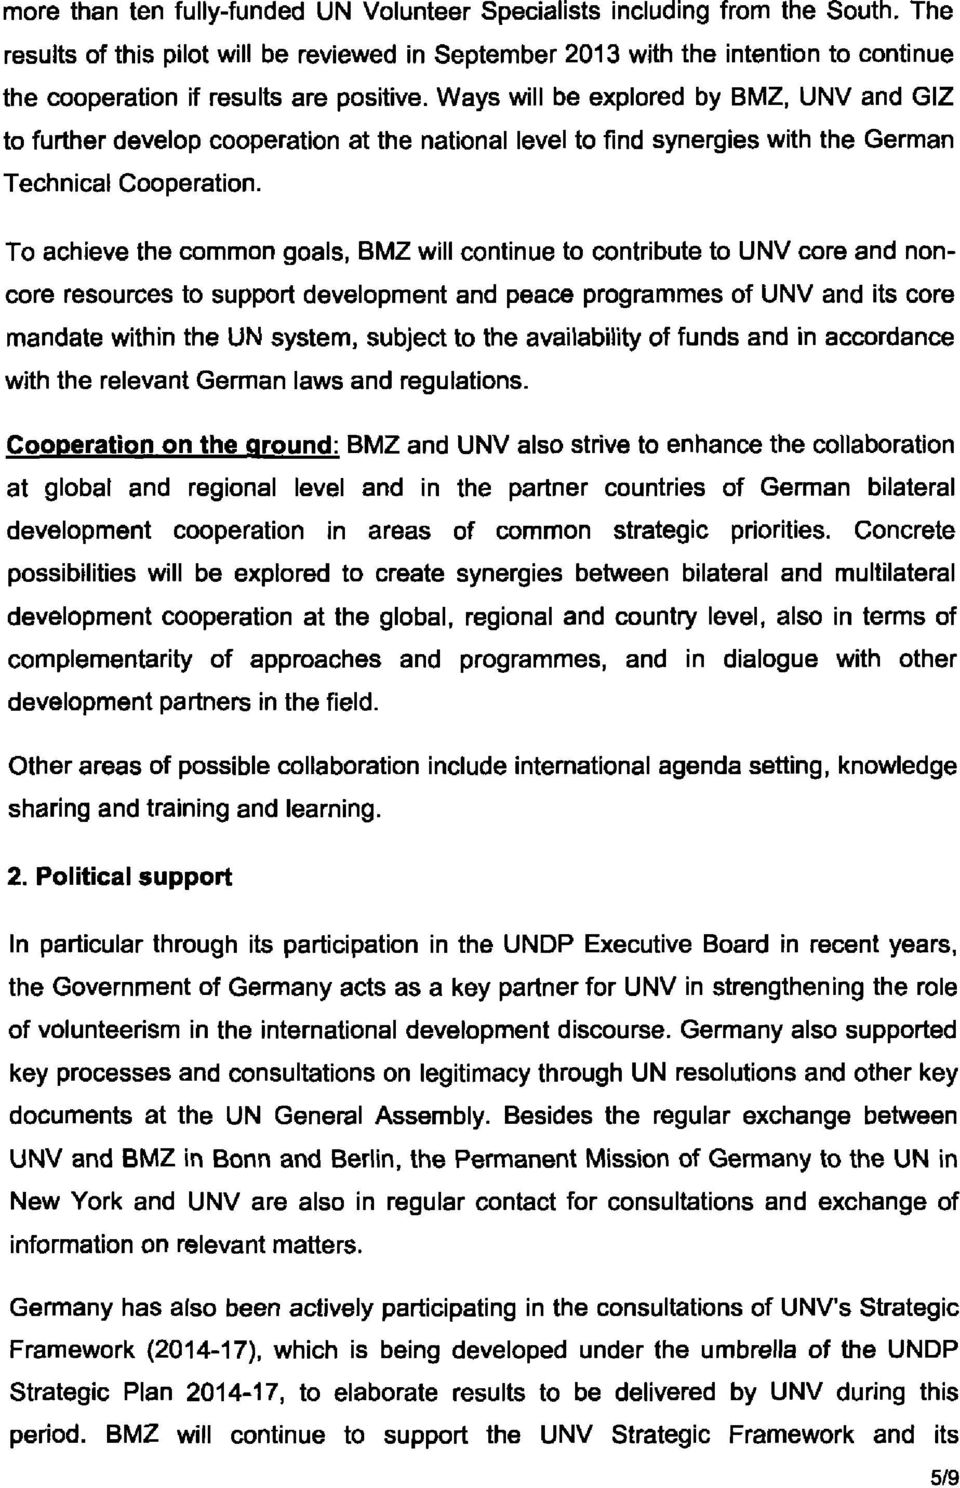 Ways will be explored by BMZ, UNV and GIZ to further develop cooperation at the national level to find synergies with the German Technical Cooperation.